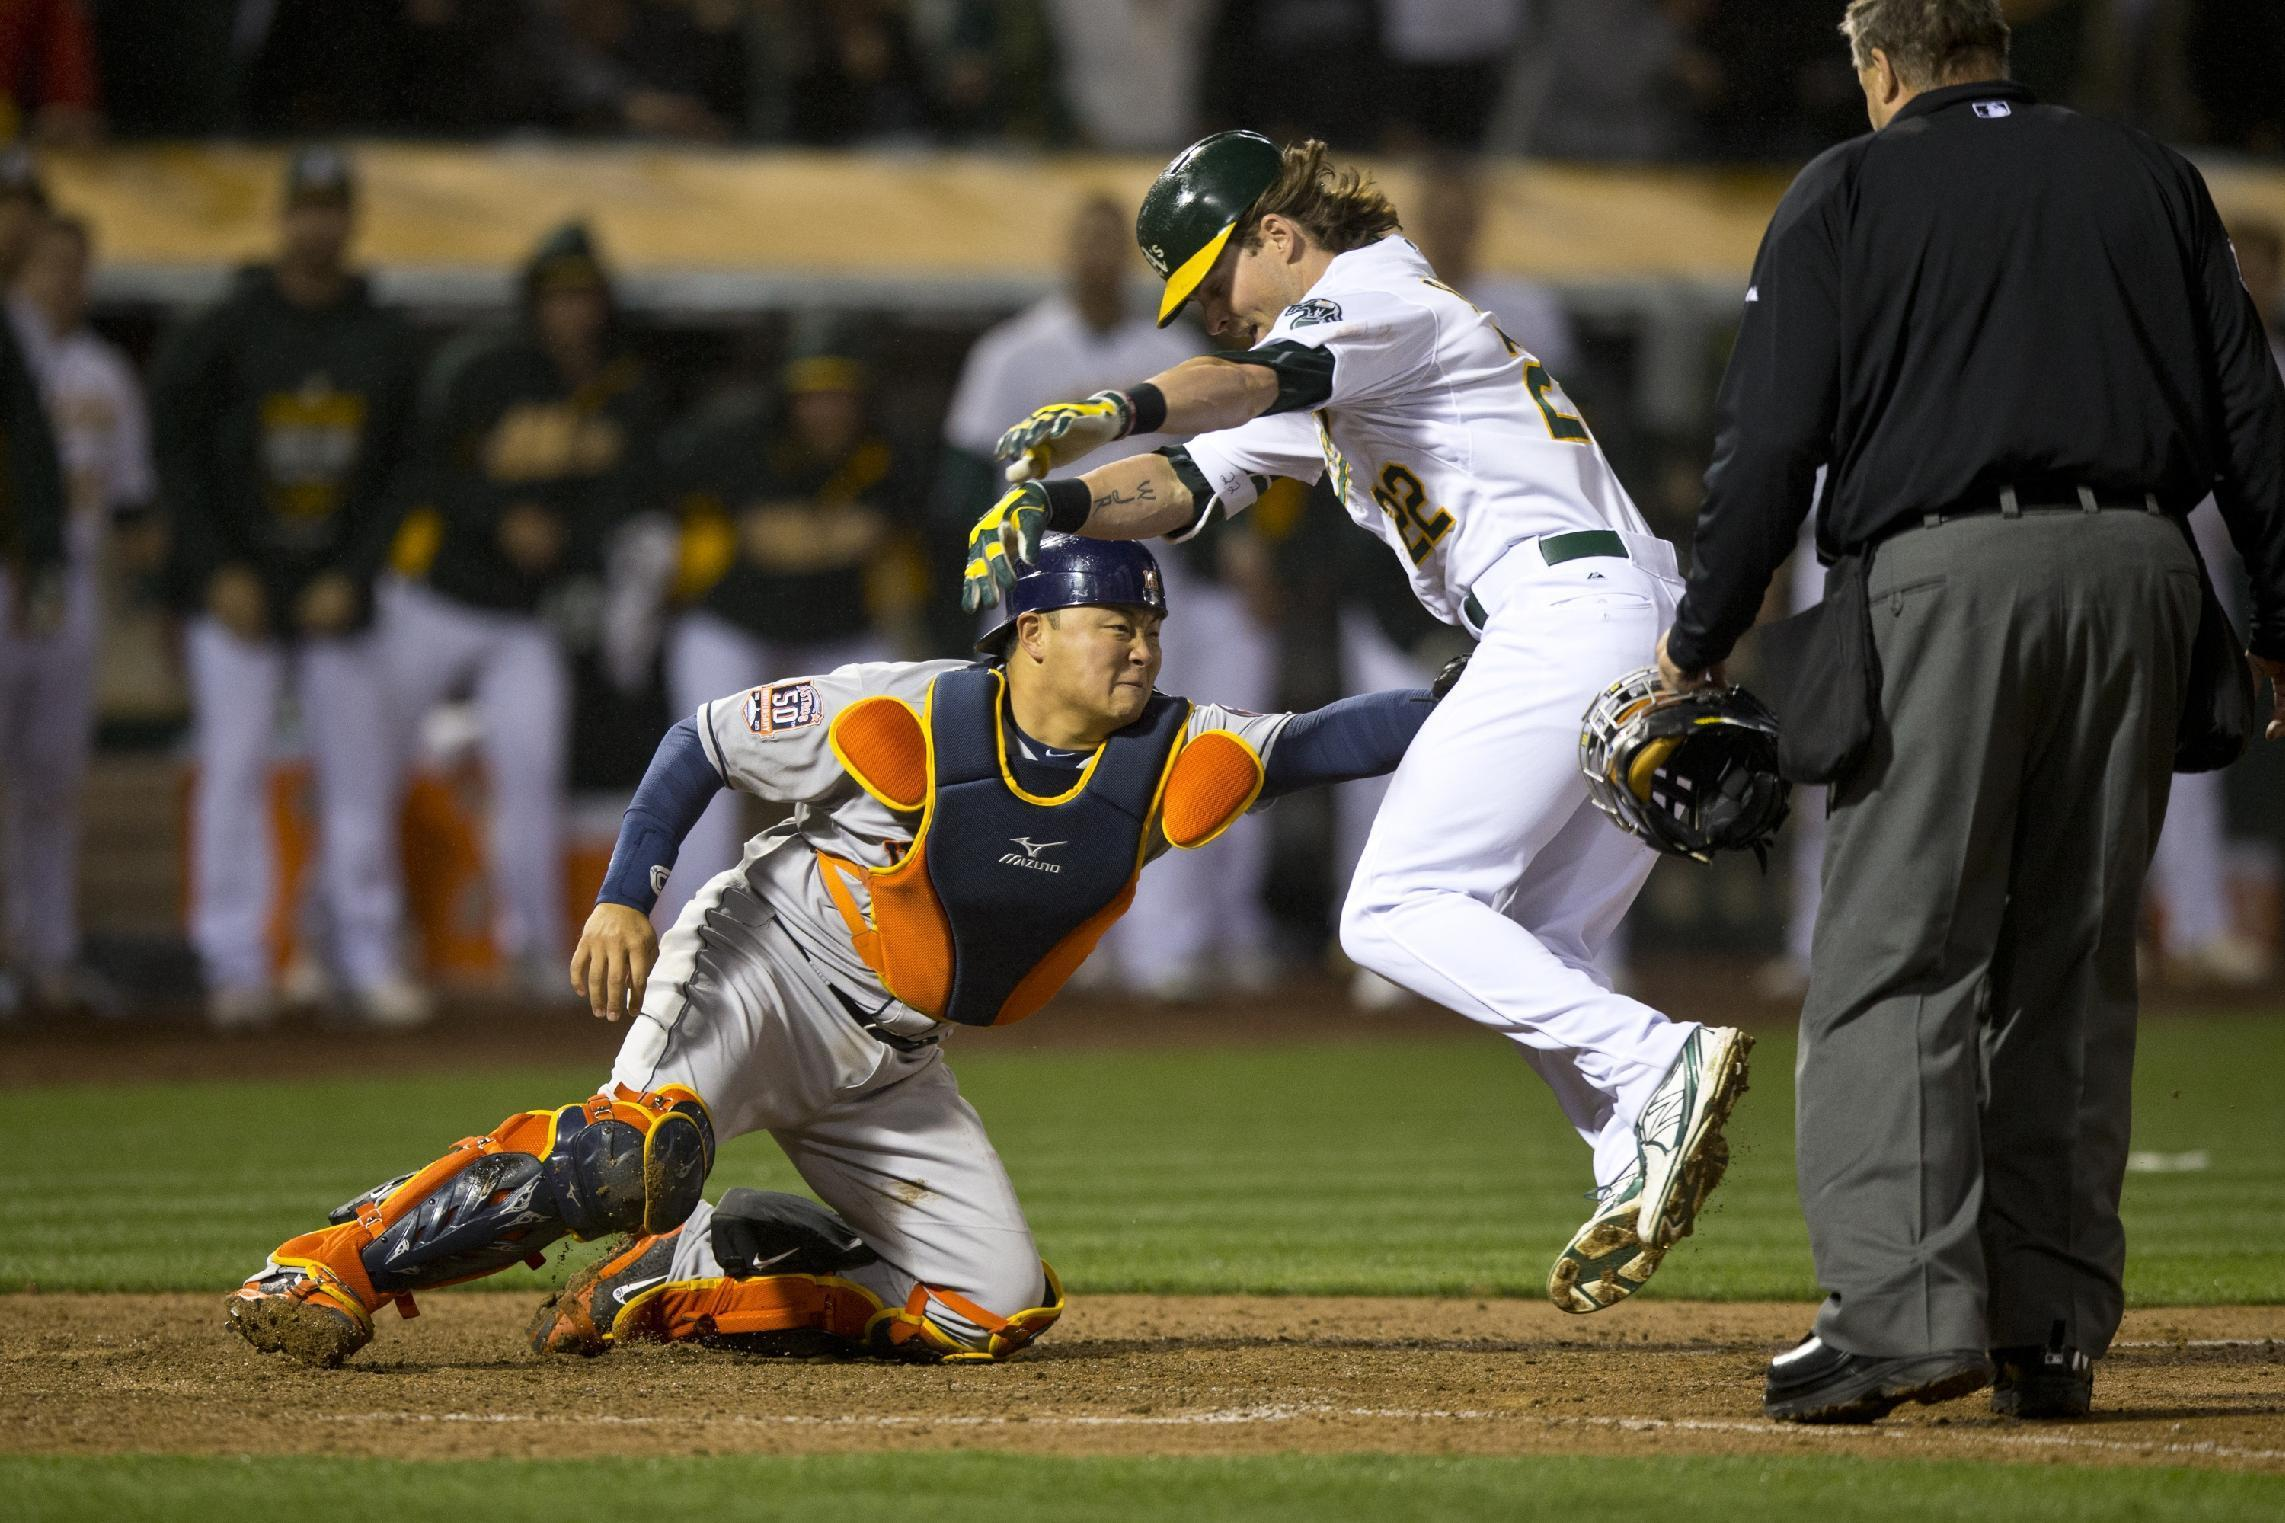 Josh Reddick nearly hit a walk-off Little League home run